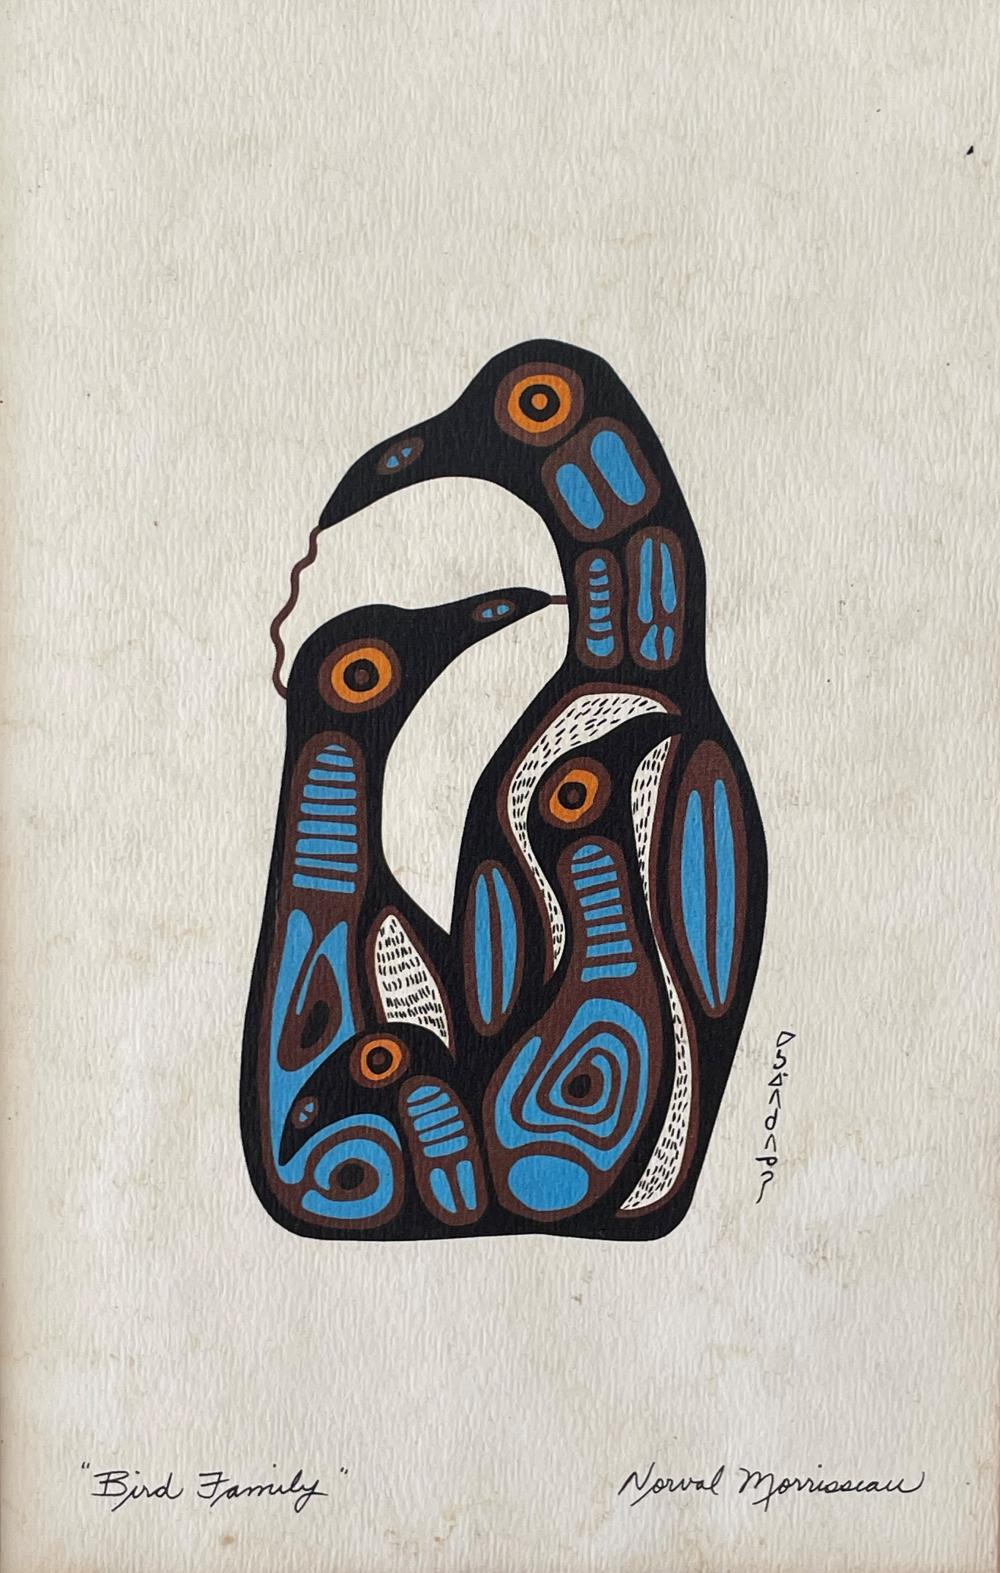 Norval Morrisseau, Canadian 1932-2007, Bird Family, colour silk screen, 14 x 22 cm. (5.51 x 8.66 in.), Frame: 28 x 36 cm. (11.02 x 14.17 in.)